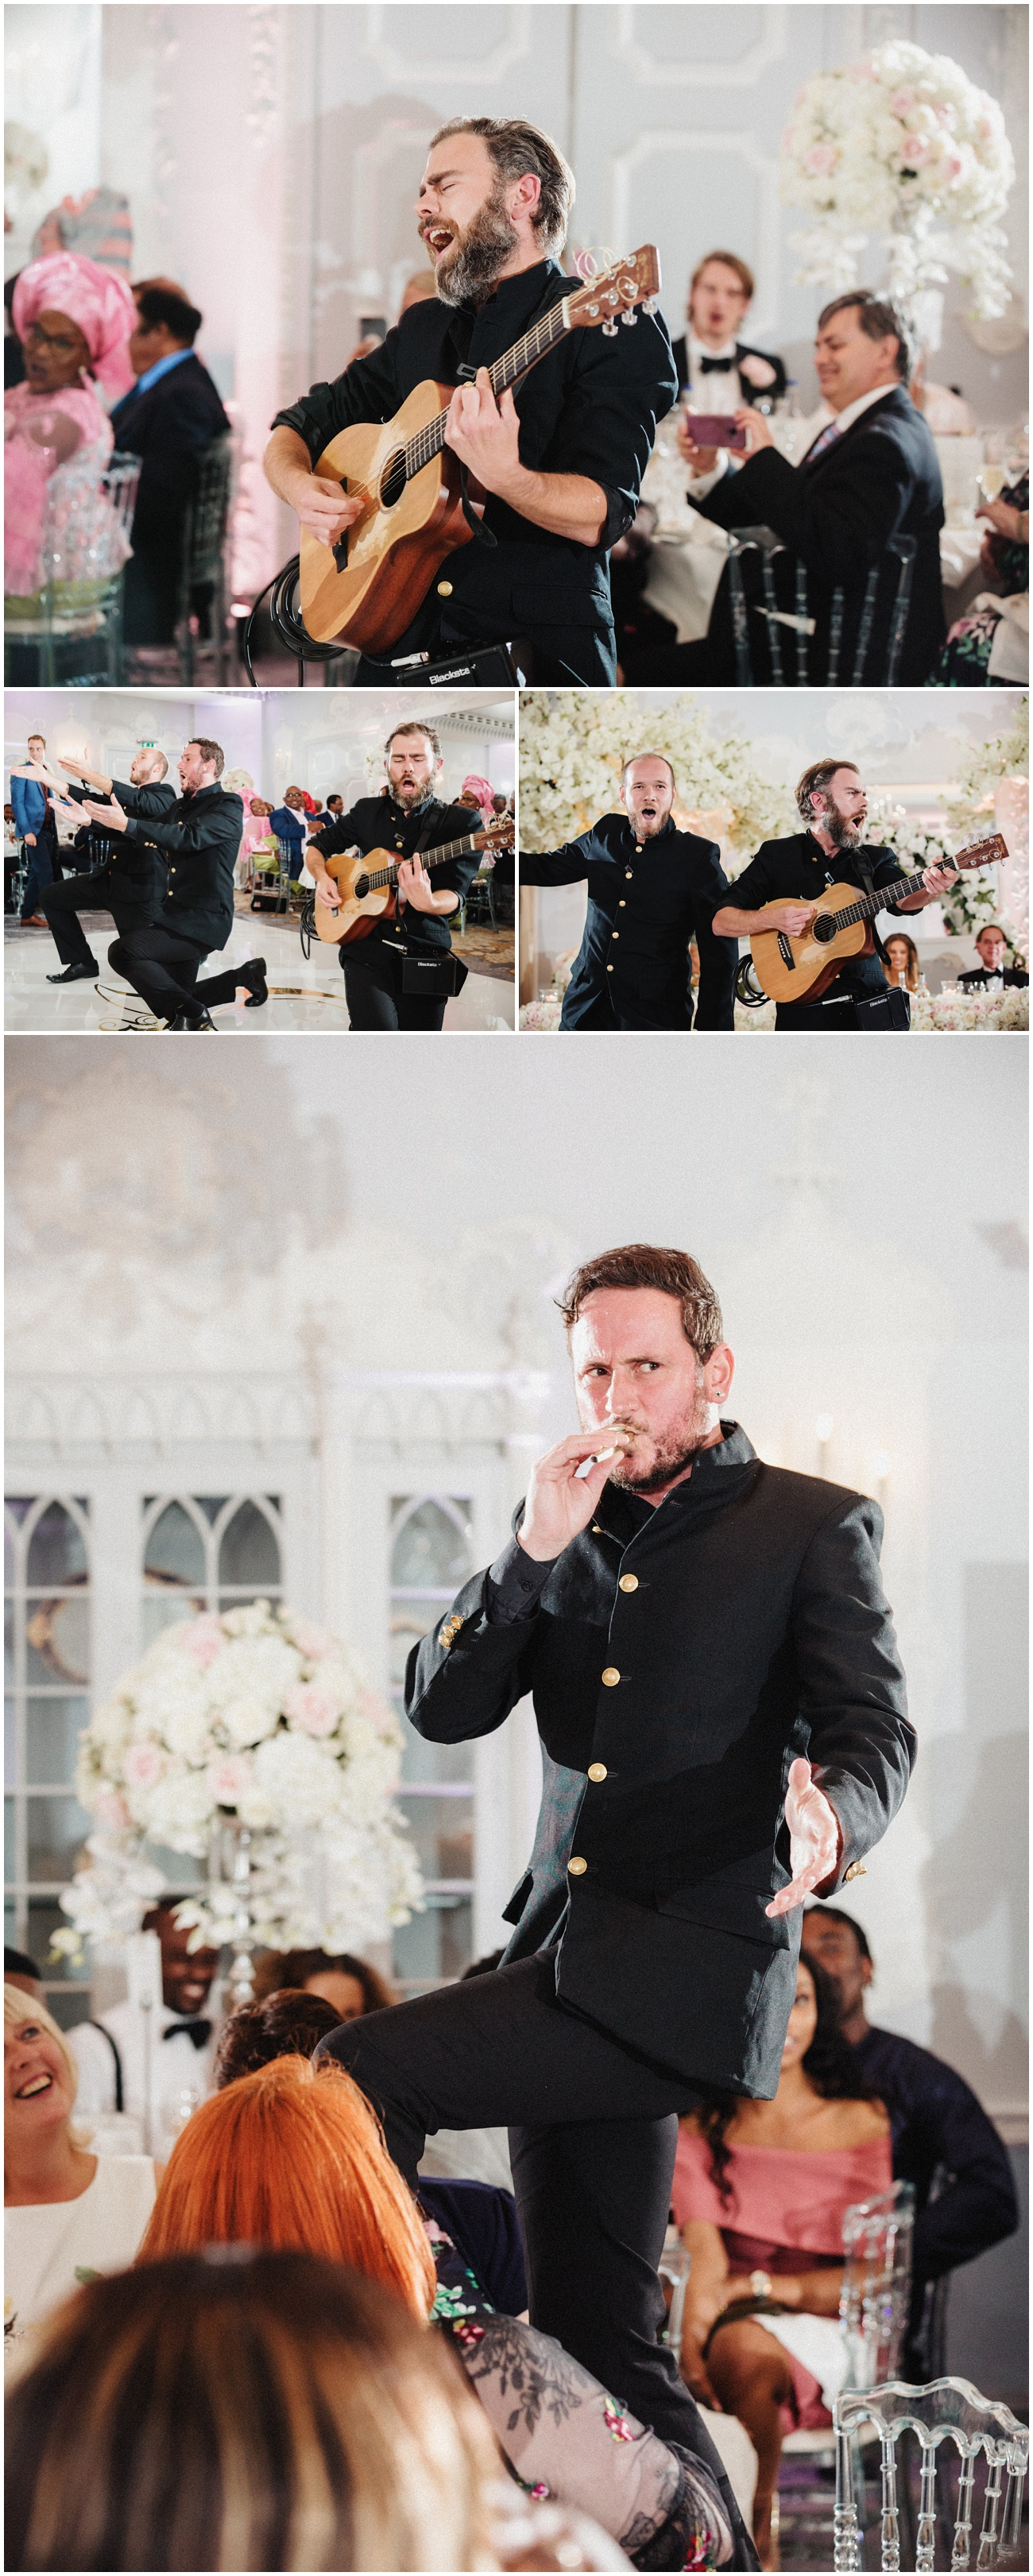 Portraits of singing waitors during  the wedding reception in the Orchid room at the Dorchester Hotel